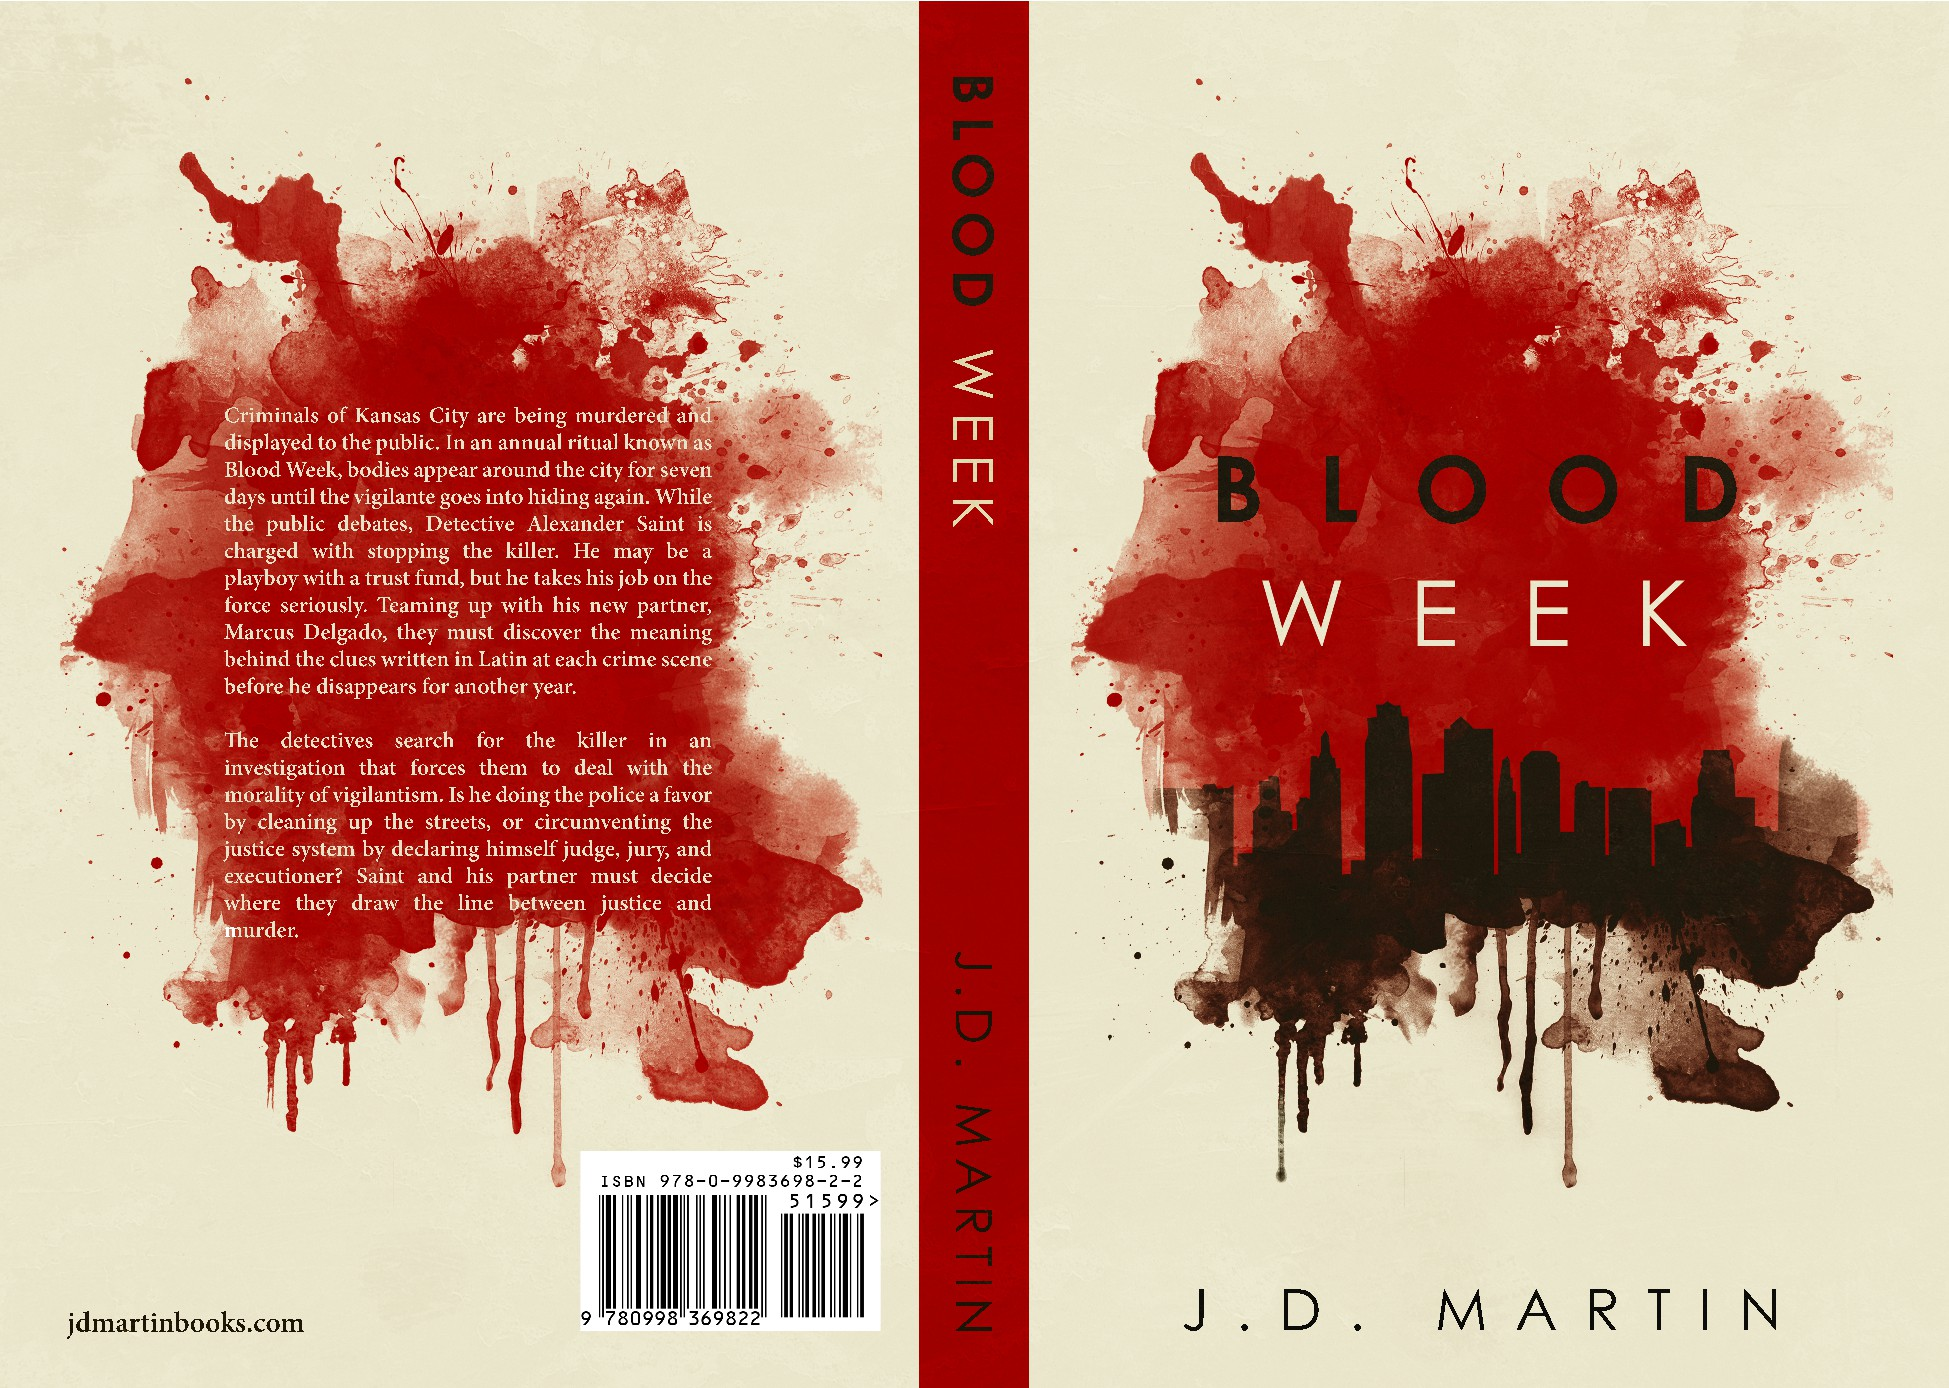 Design simple yet eye-catching book cover for crime thriller.